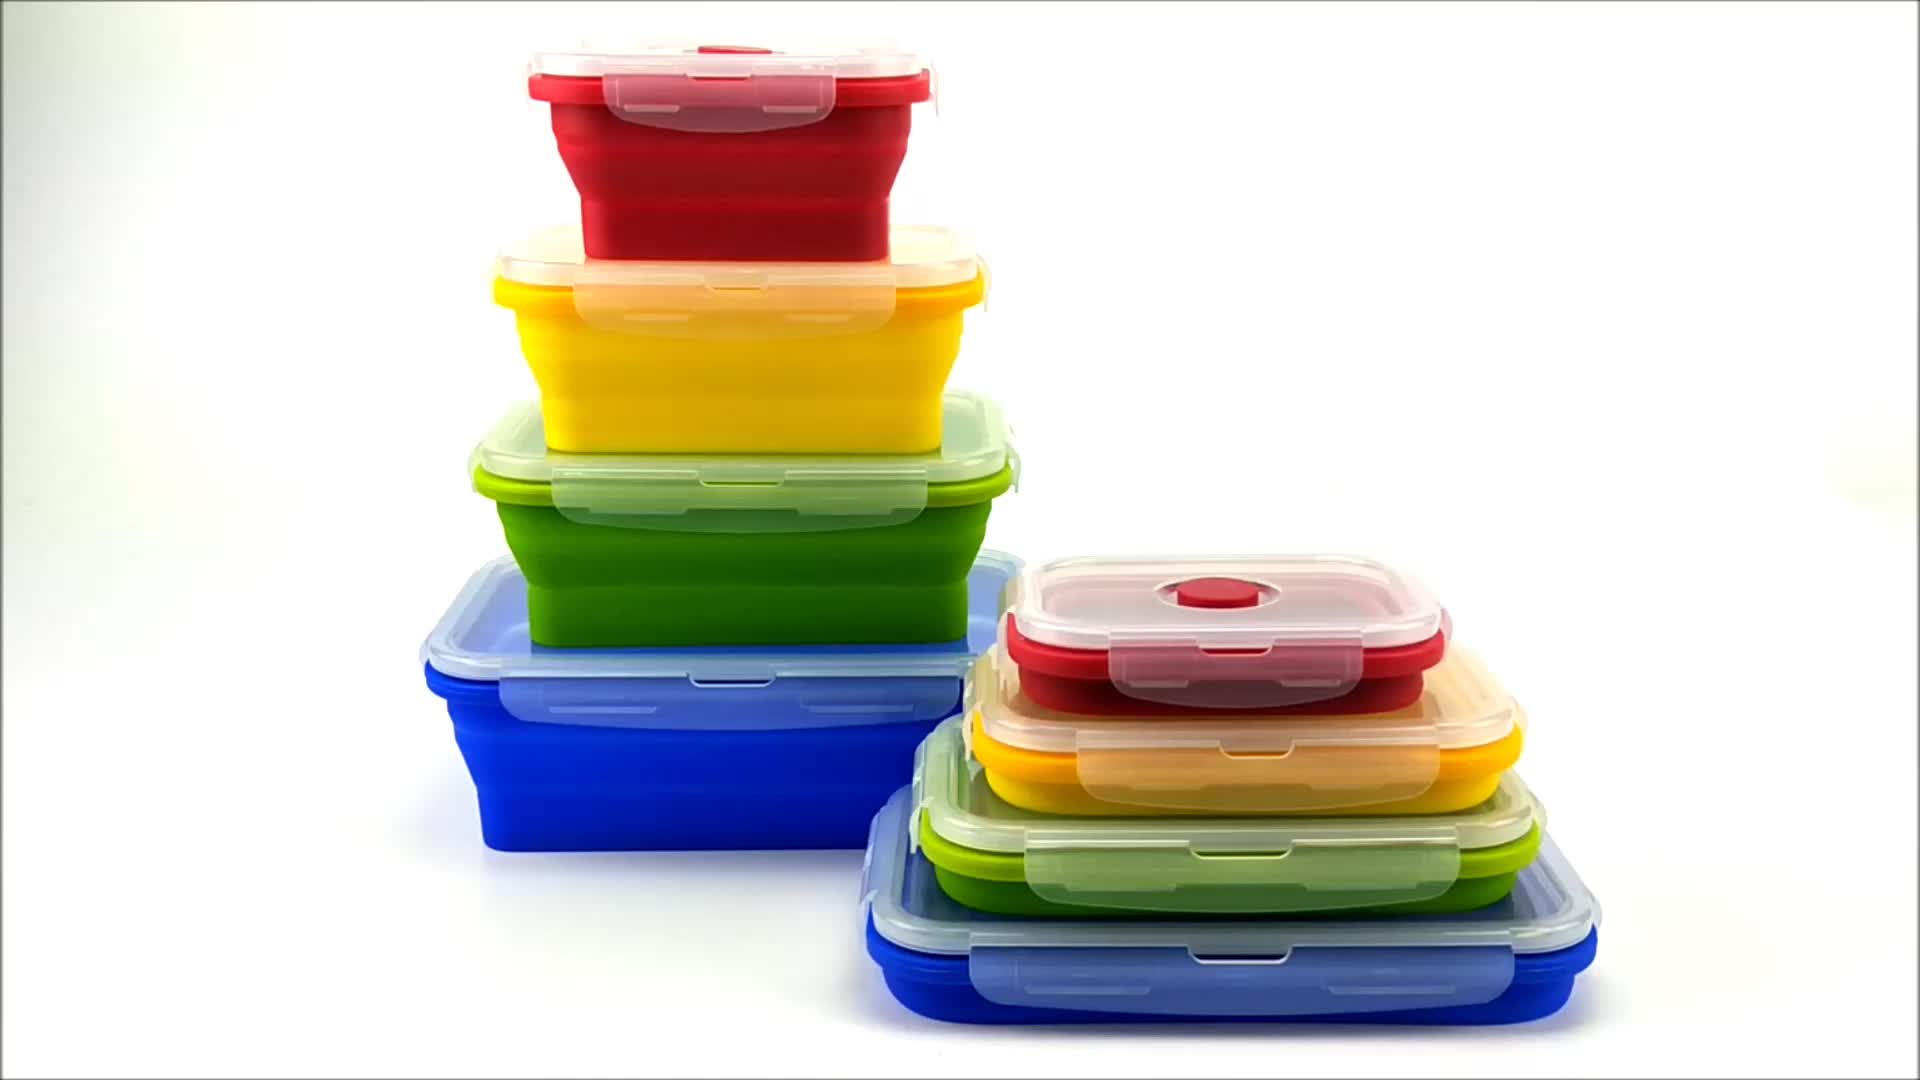 Creative Folding Portable Bento Boxes Microwave Lunch Box Silicone Plastic Fruit Food Collapsible Container China Dinner